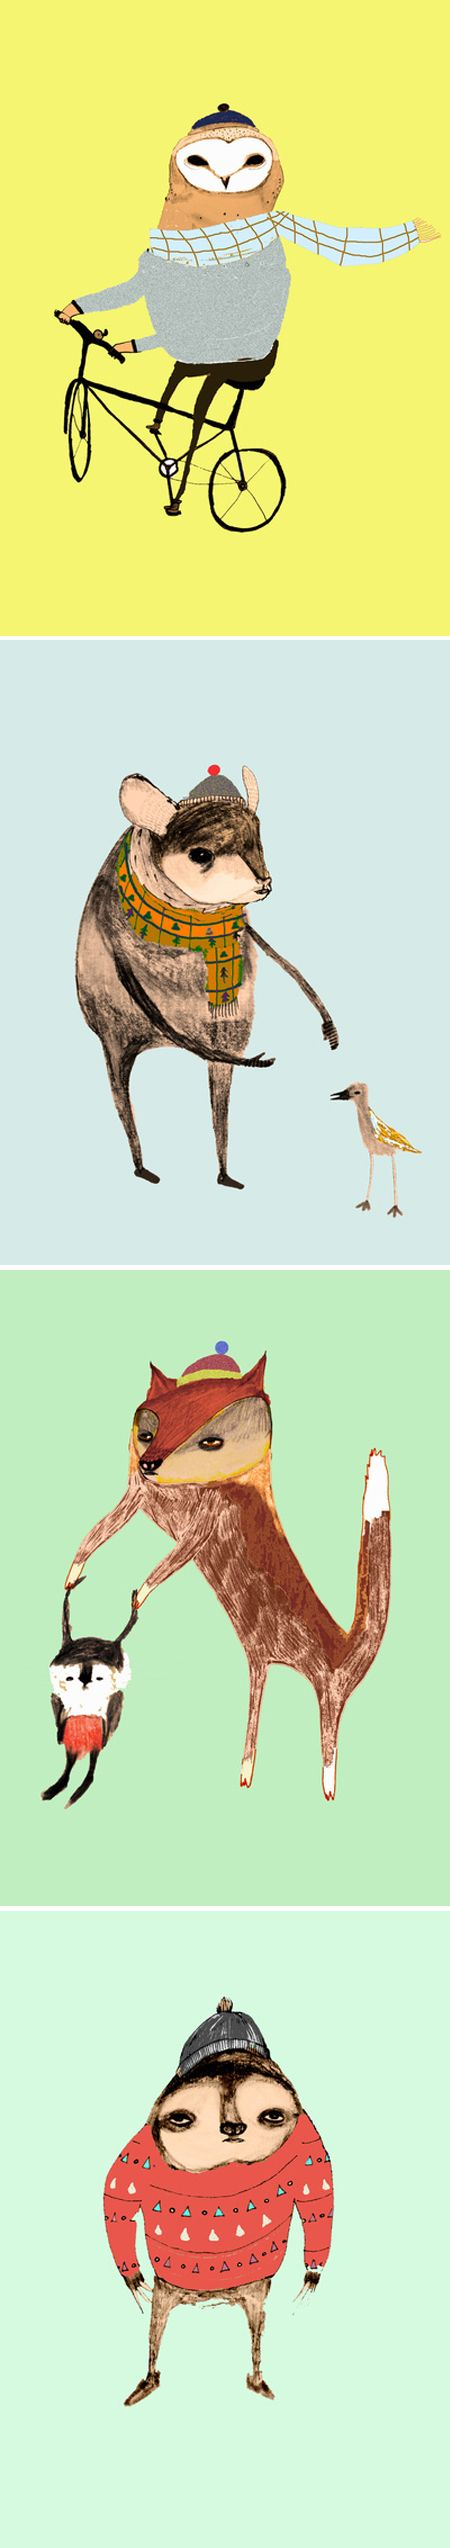 Playful Animals in Clothing